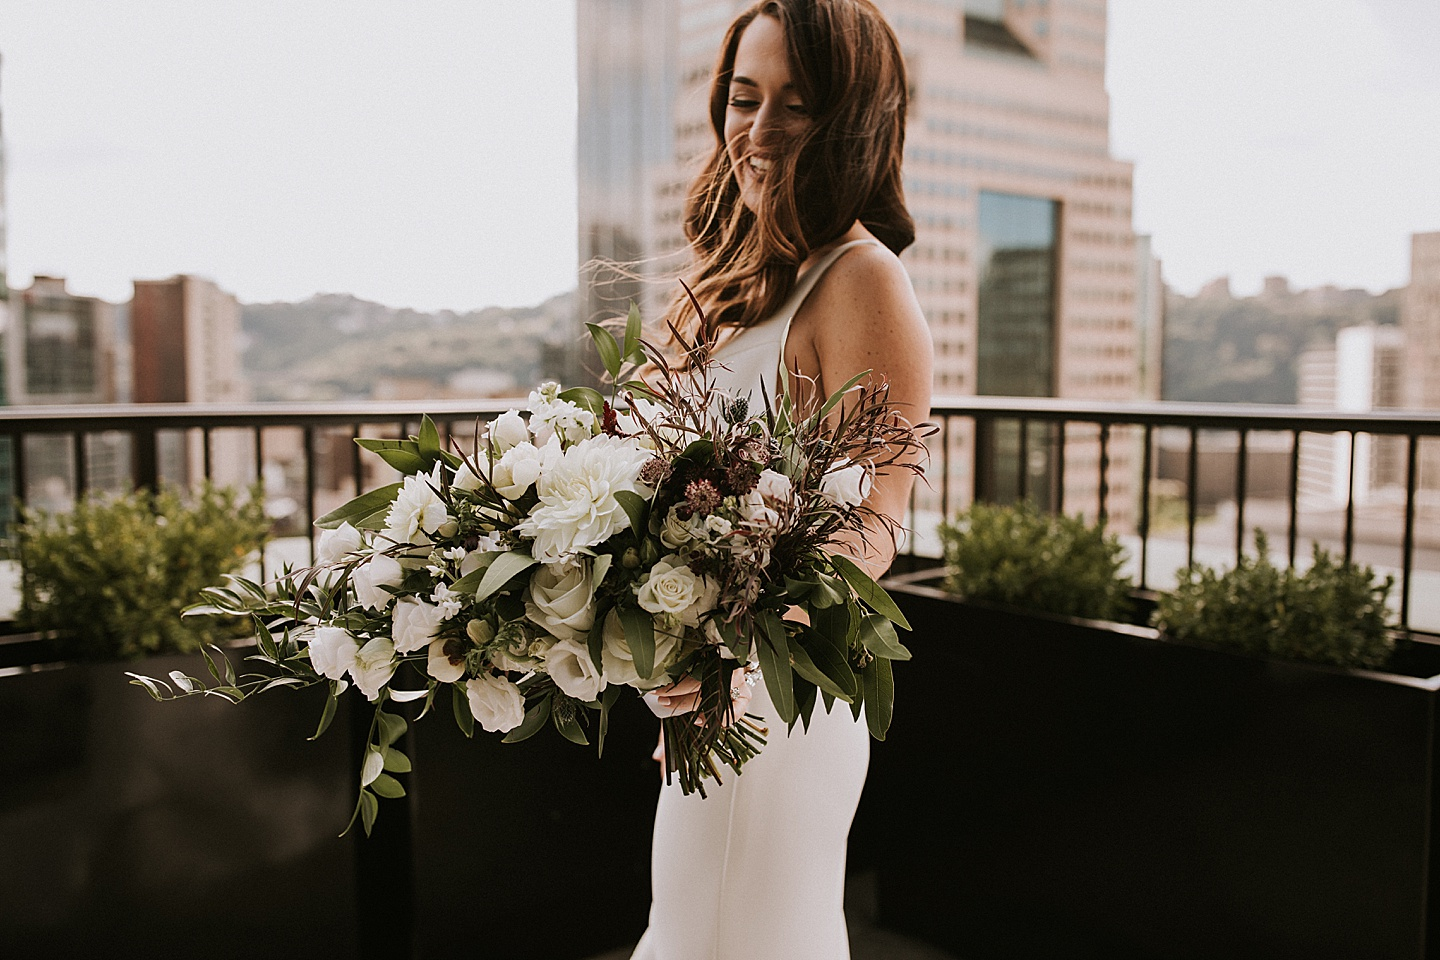 Bride with bouquet of flowers in Pittsburgh, PA